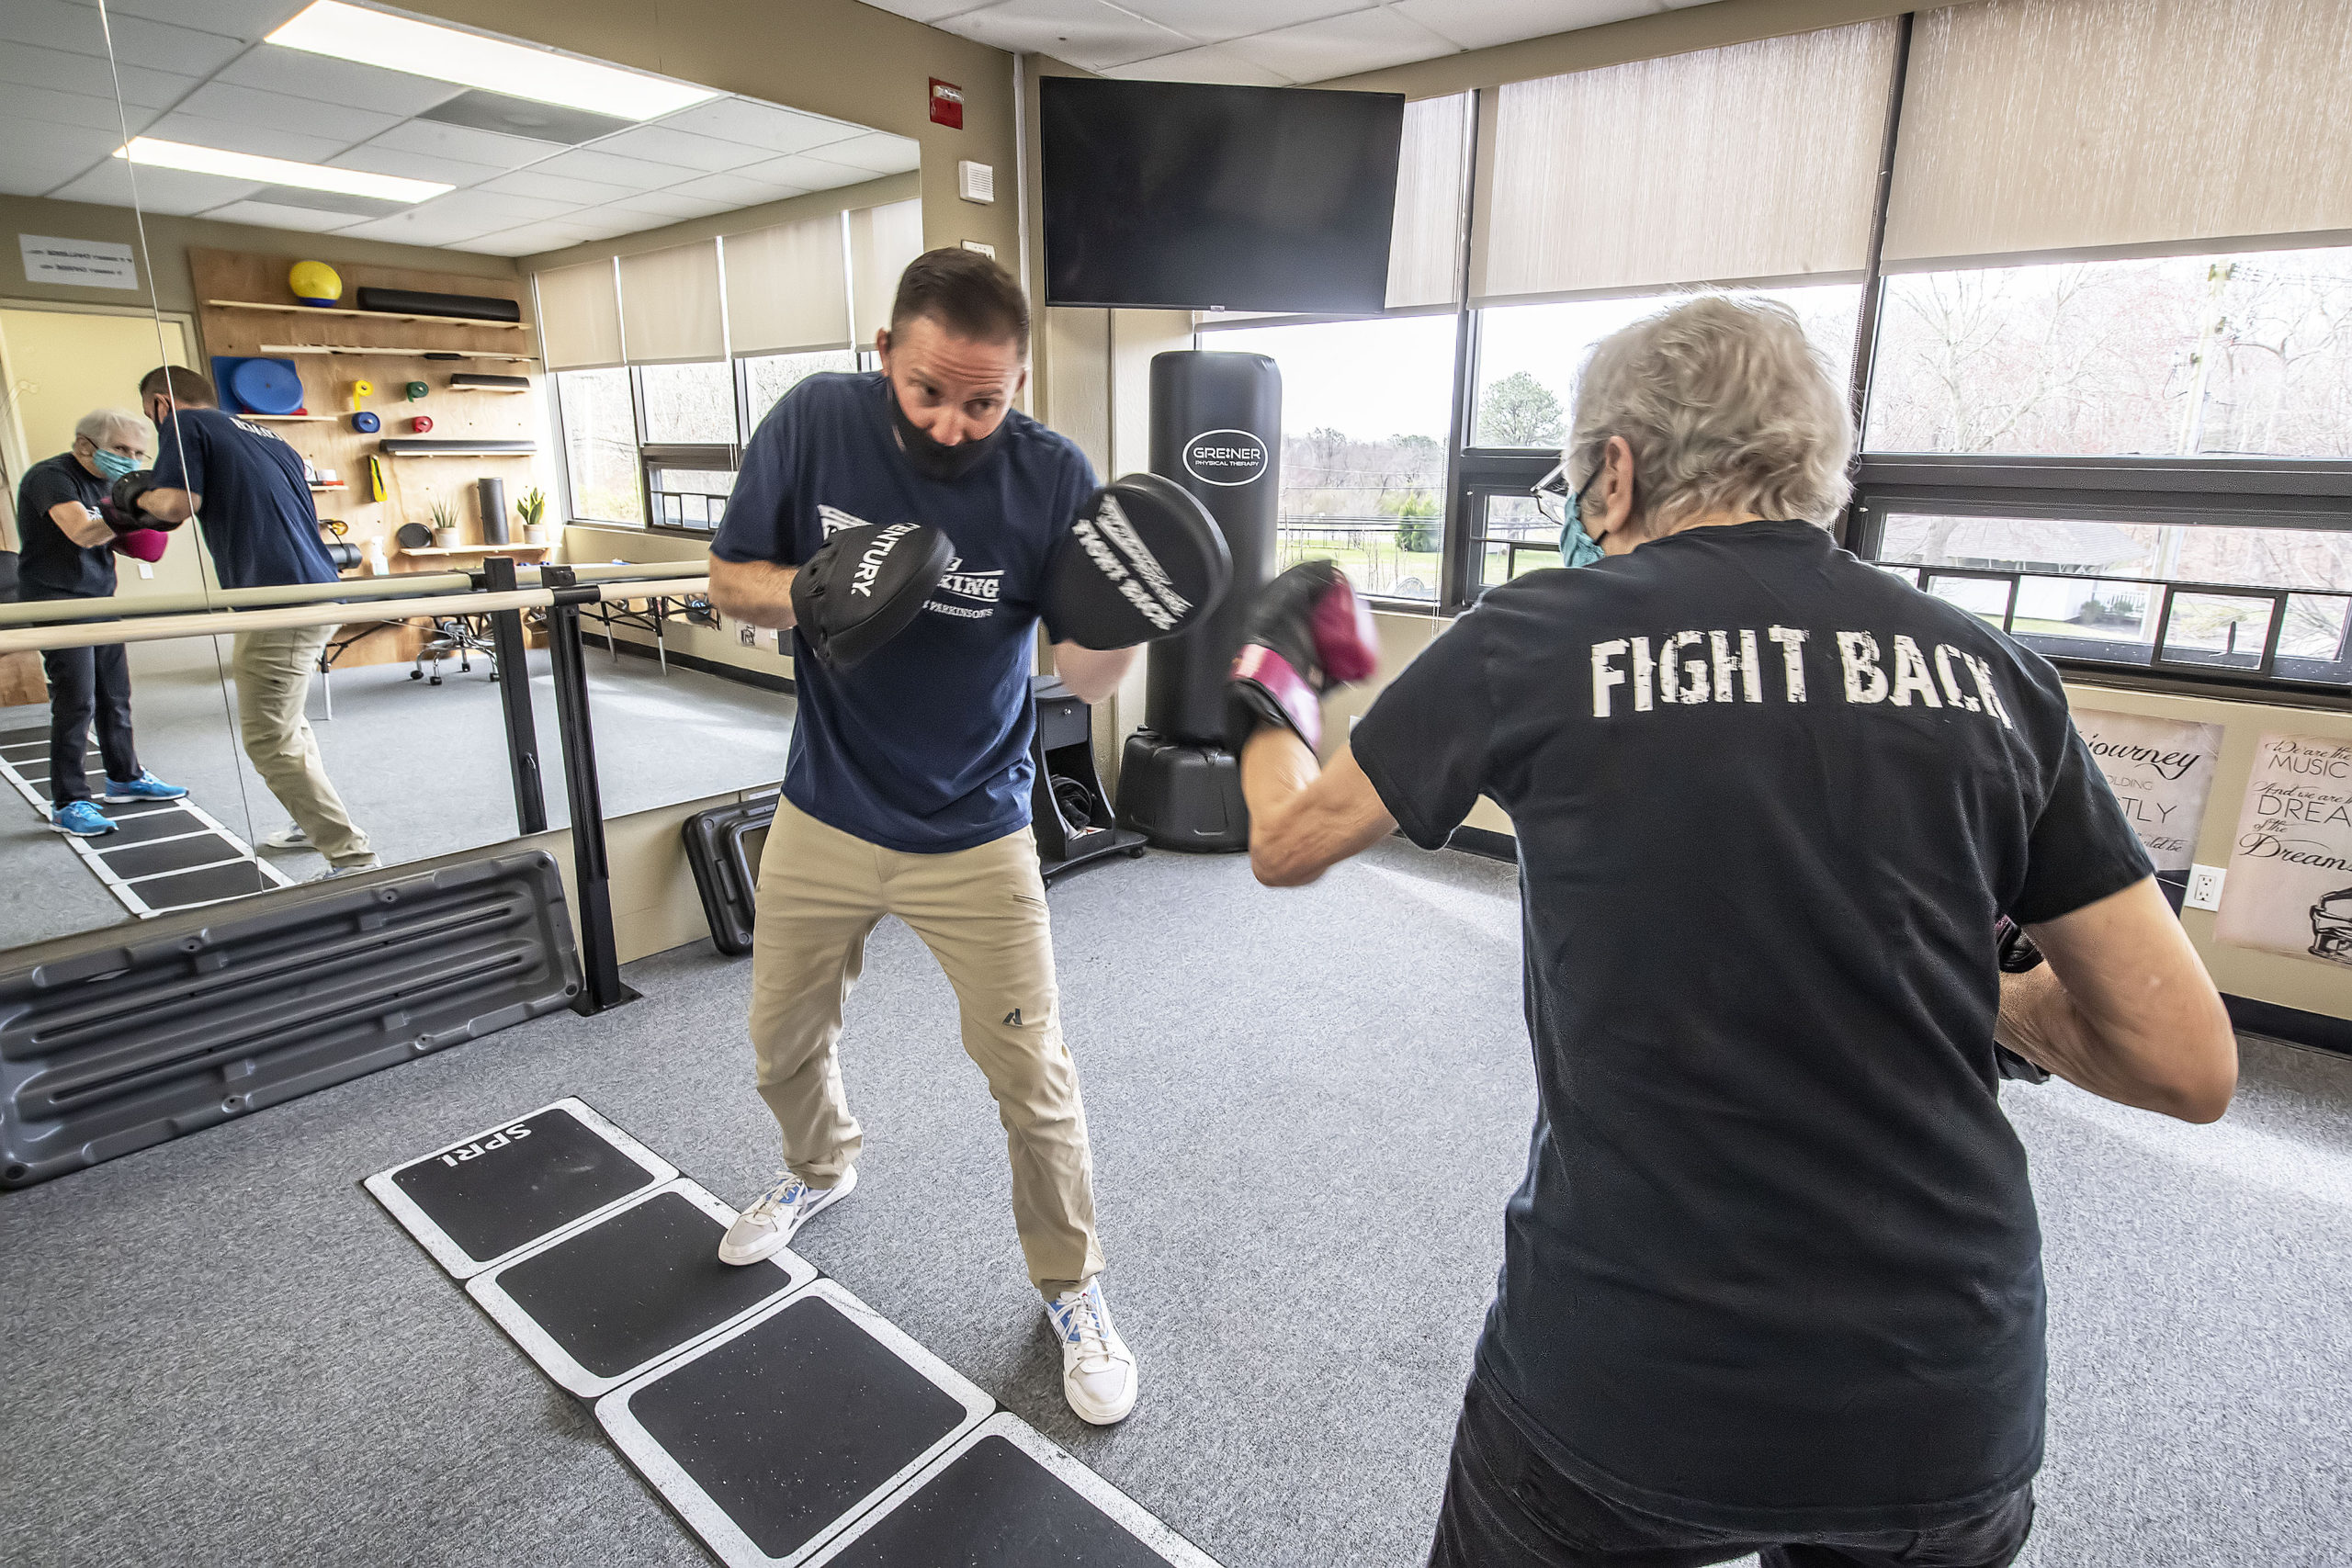 Seth Greiner of Greiner Physical Therapy does a Rock Steady Boxing workout with Parkinson's patient Janet Barr at the Greiner Physical Therapy studio in Speonk.